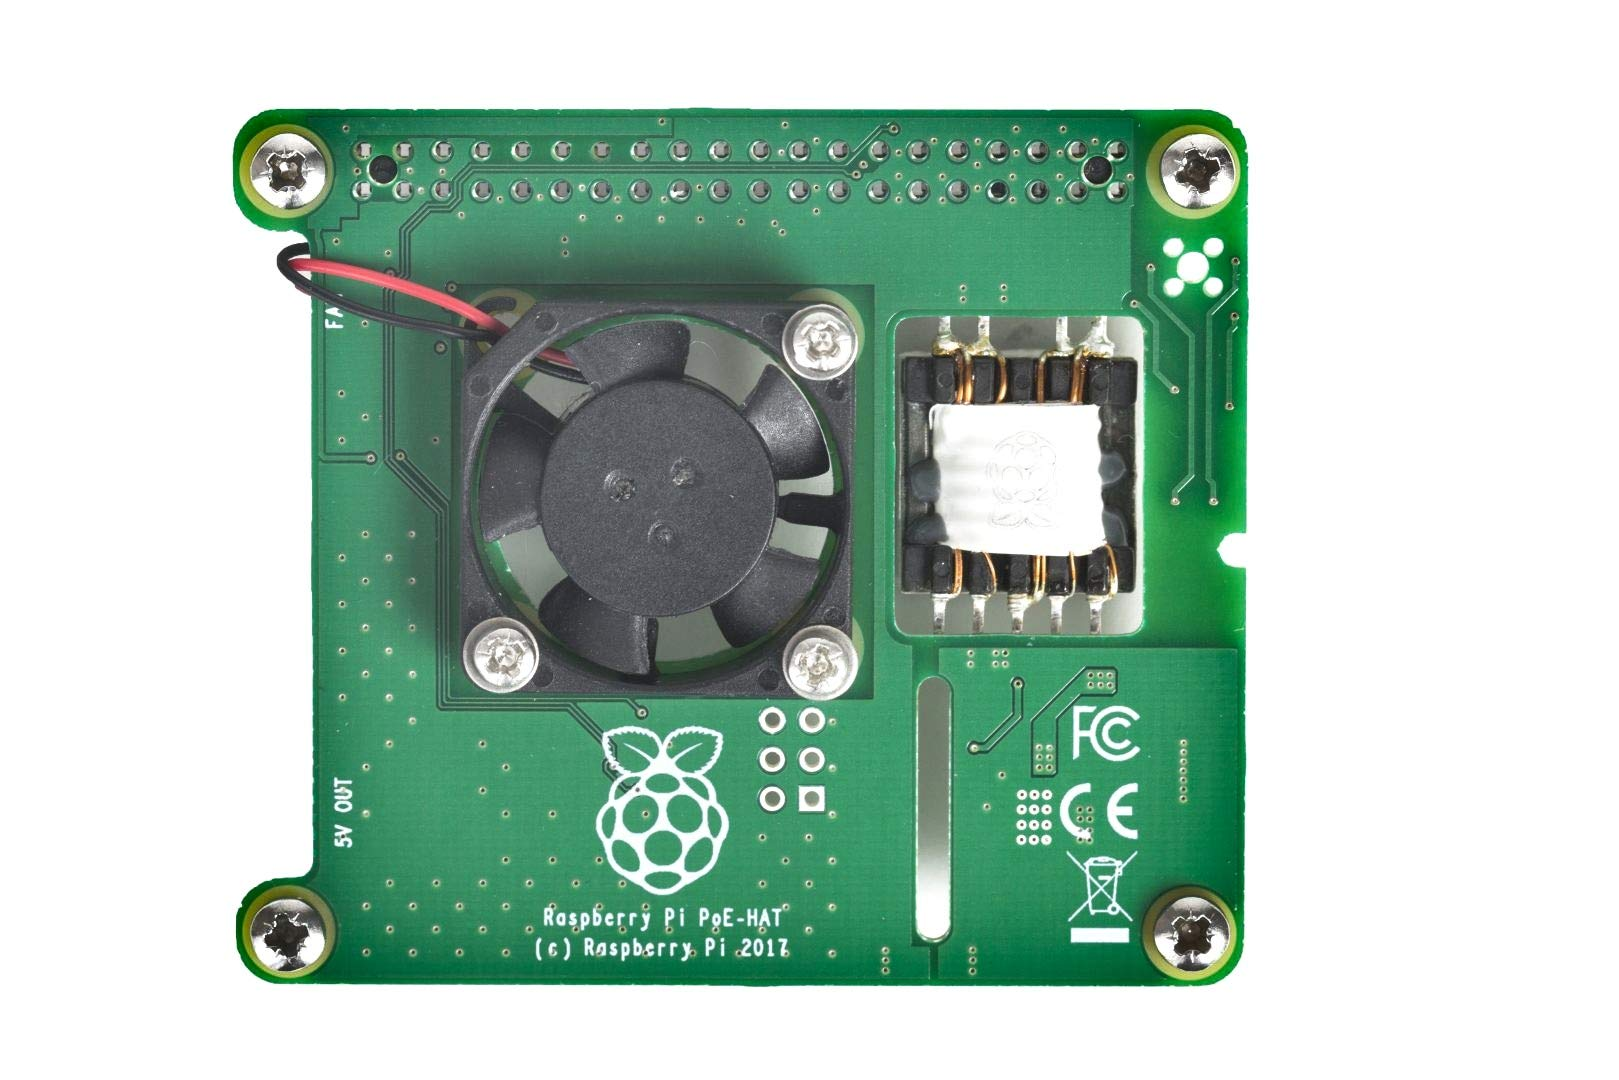 Official Raspberry Pi Power Over Ethernet (PoE) HAT for Raspberry Pi 3 B+ and 802.3af PoE Network